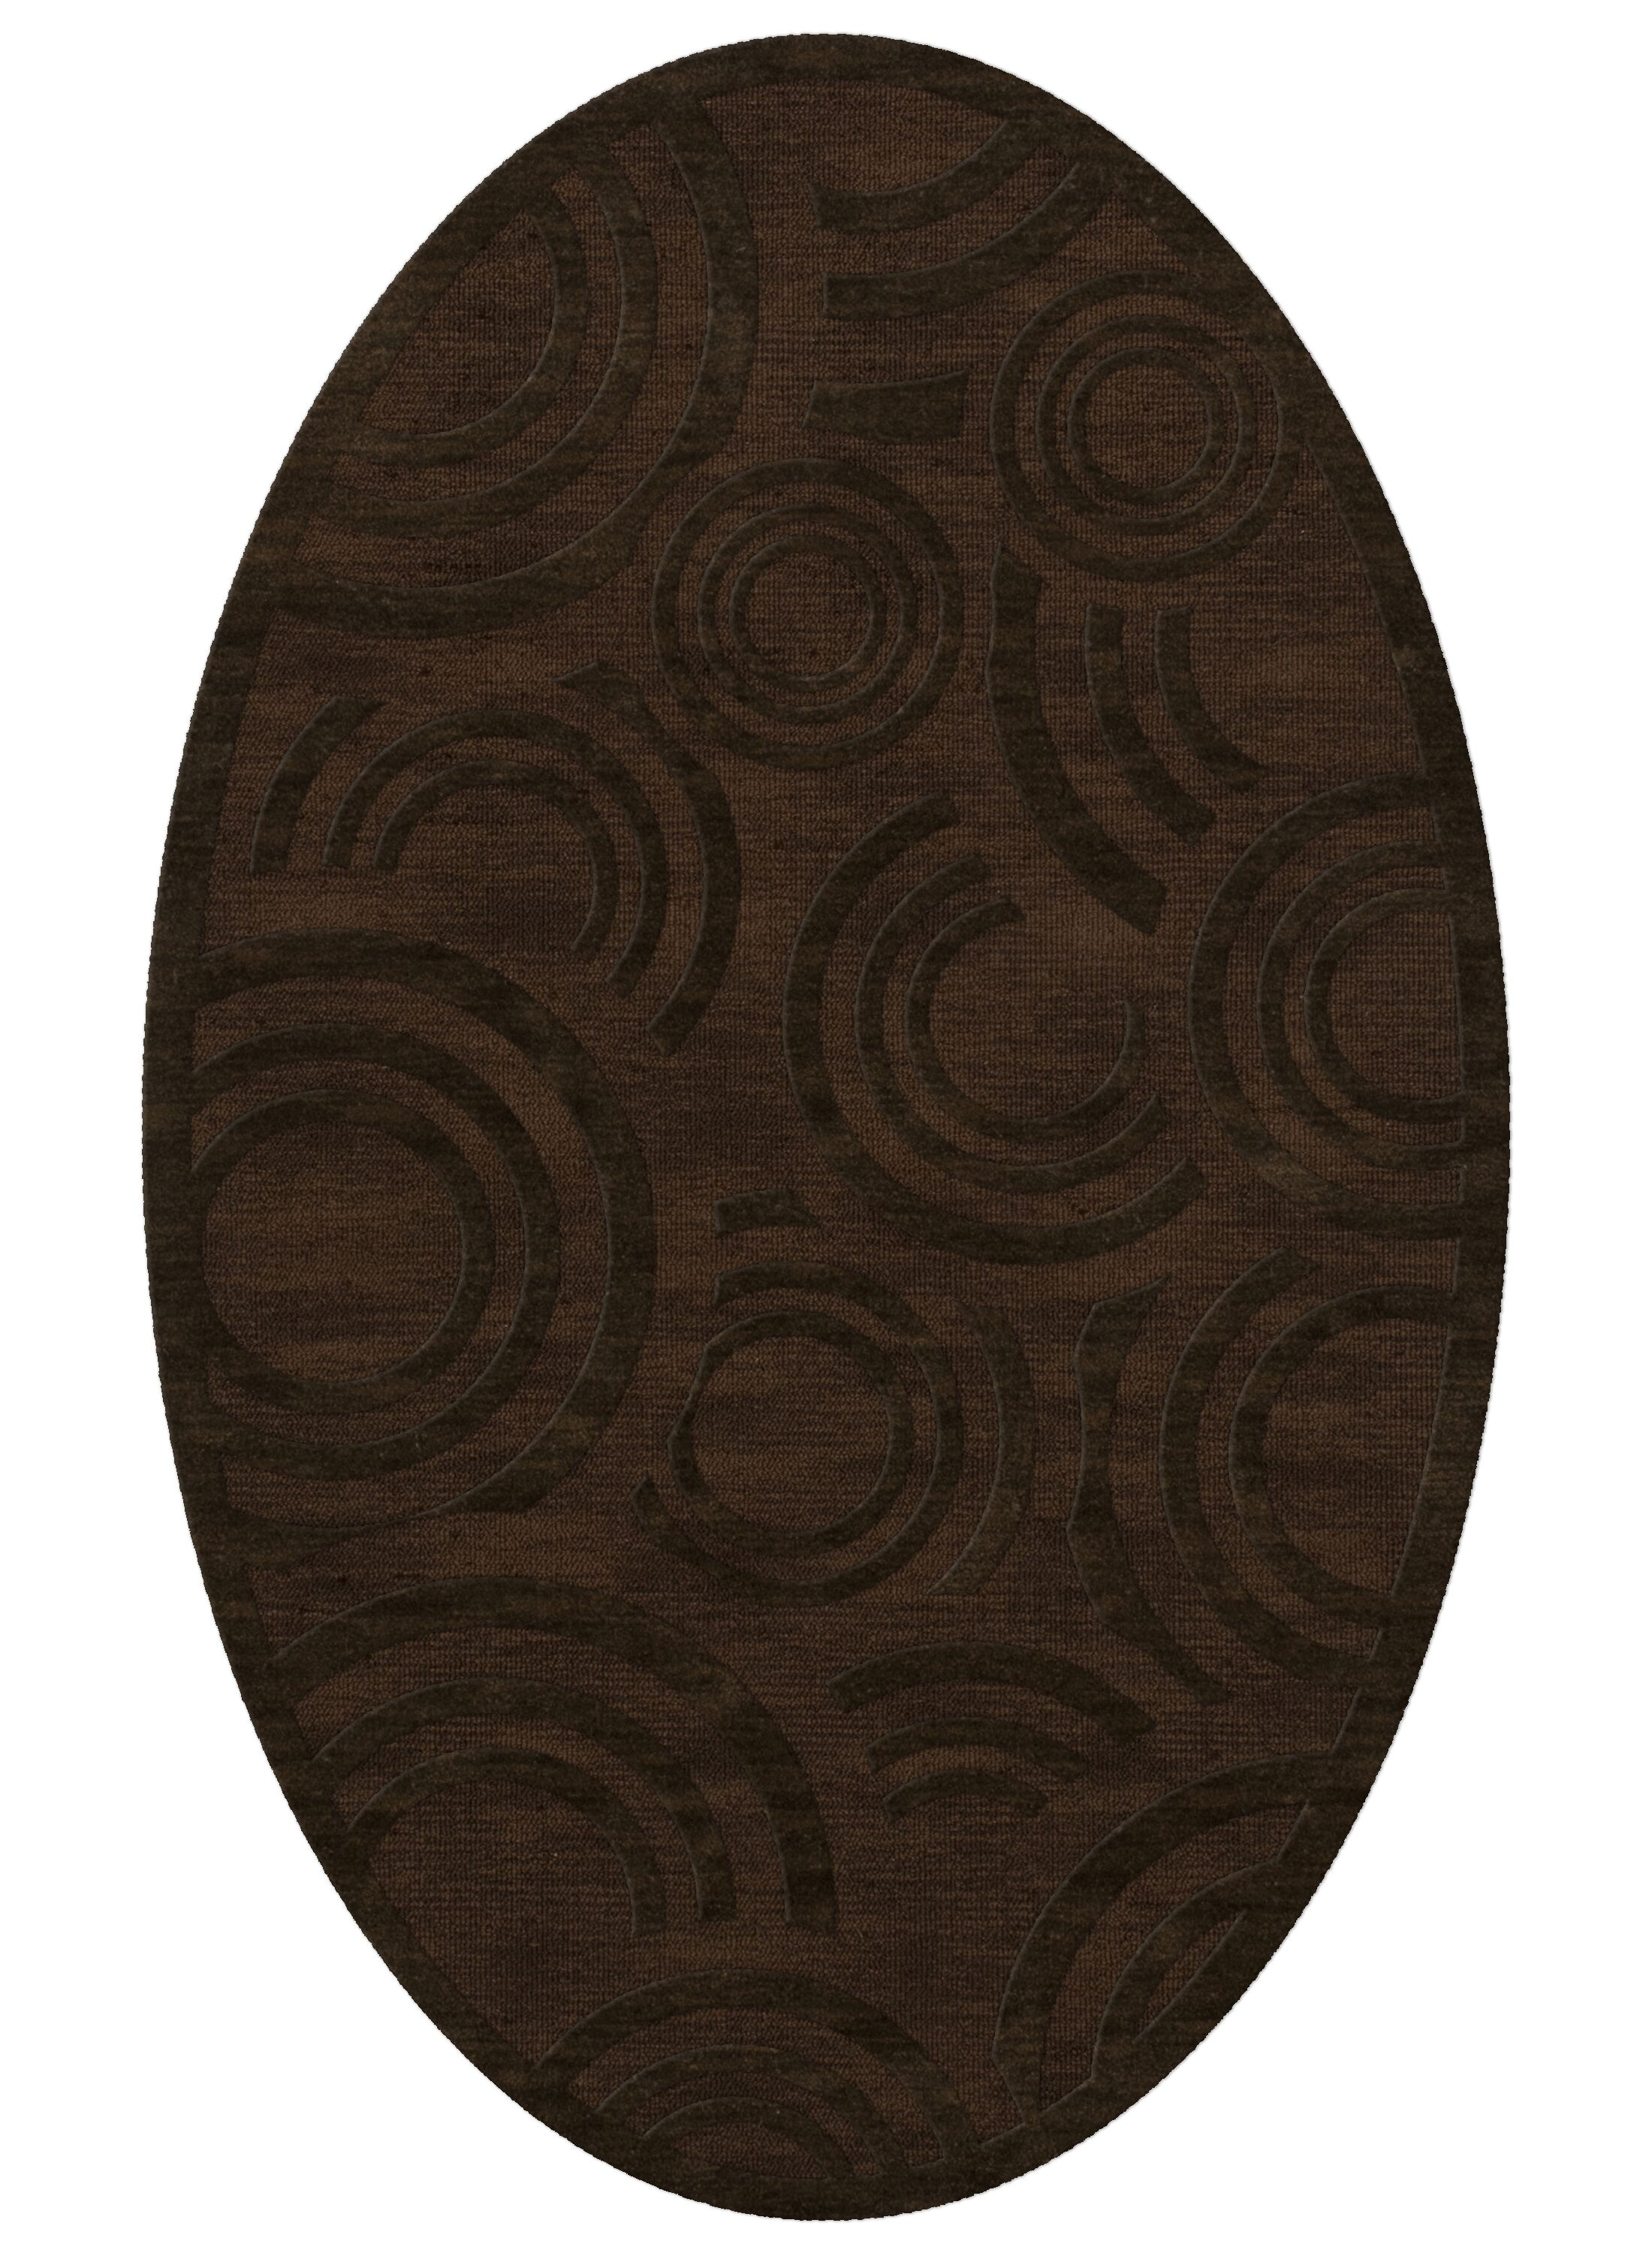 Dover Tufted Wool Fudge Area Rug Rug Size: Oval 6' x 9'